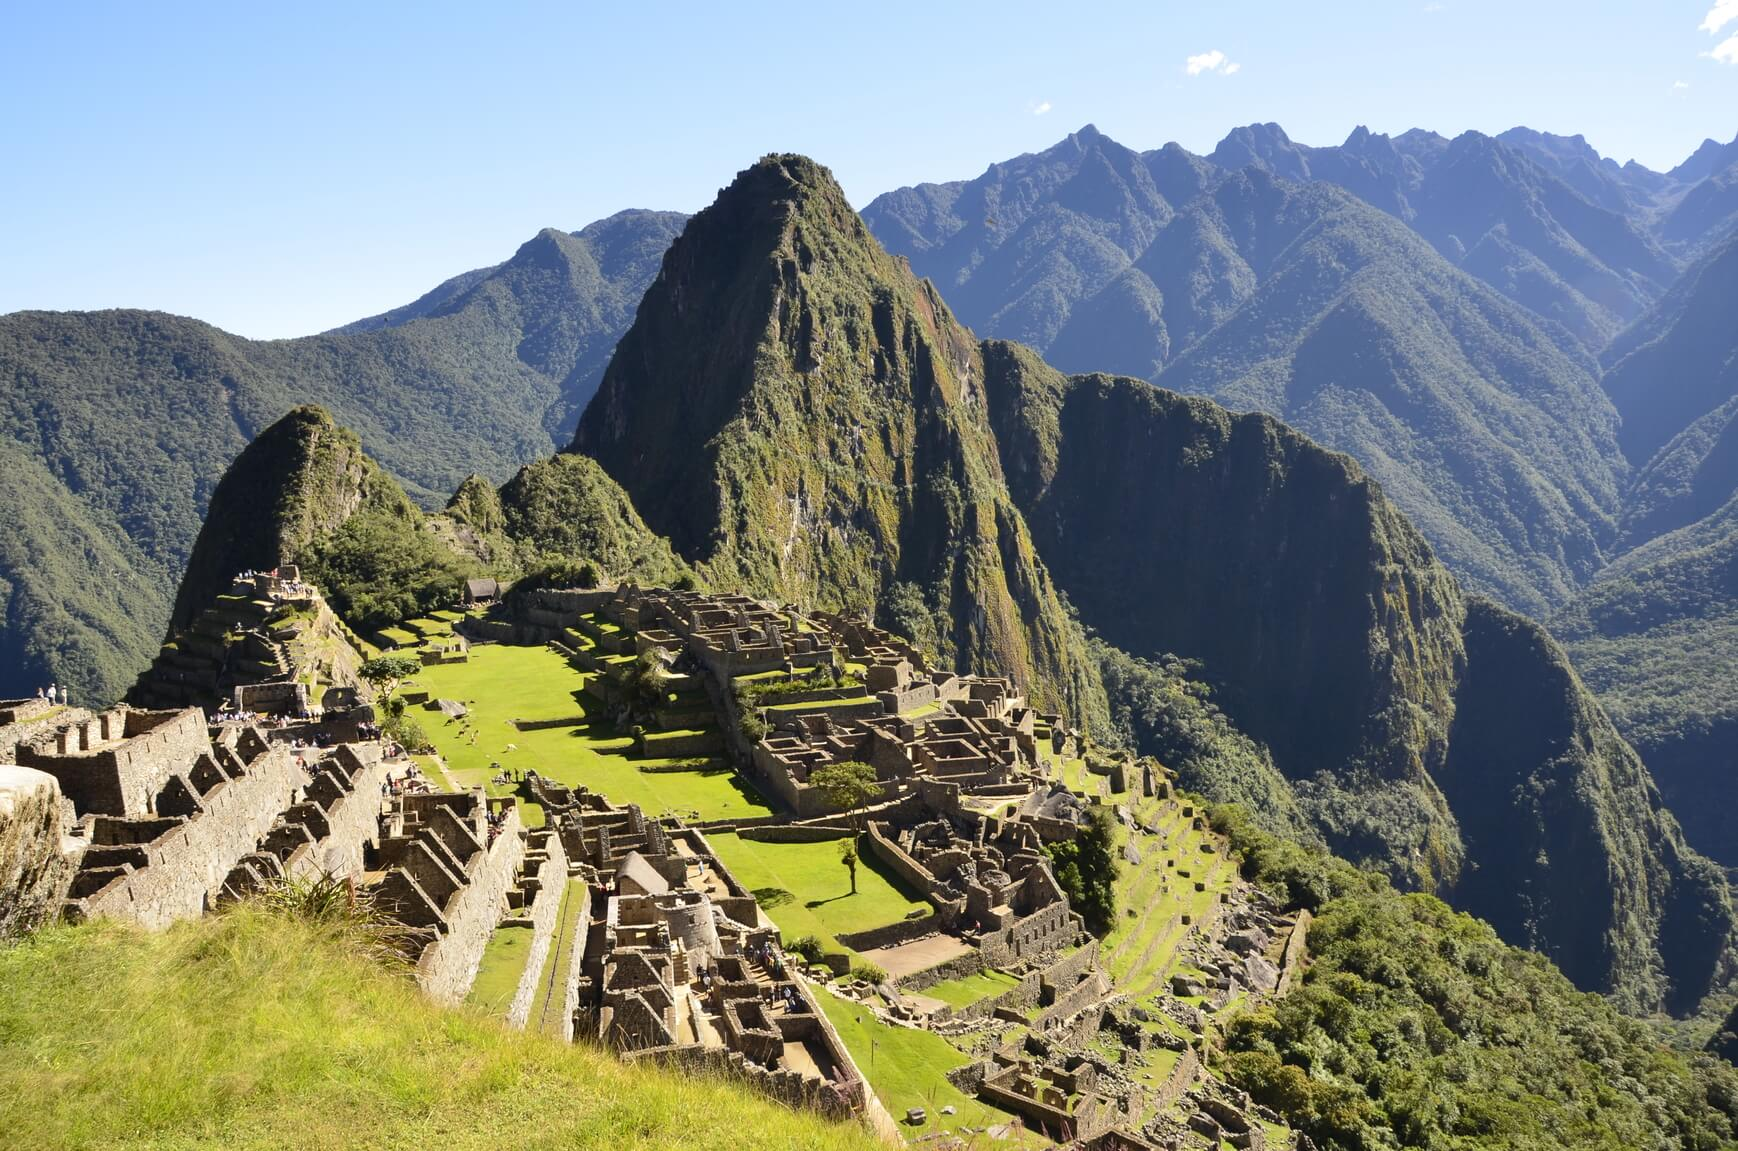 Los Angeles to Cusco, Peru for only $481 roundtrip